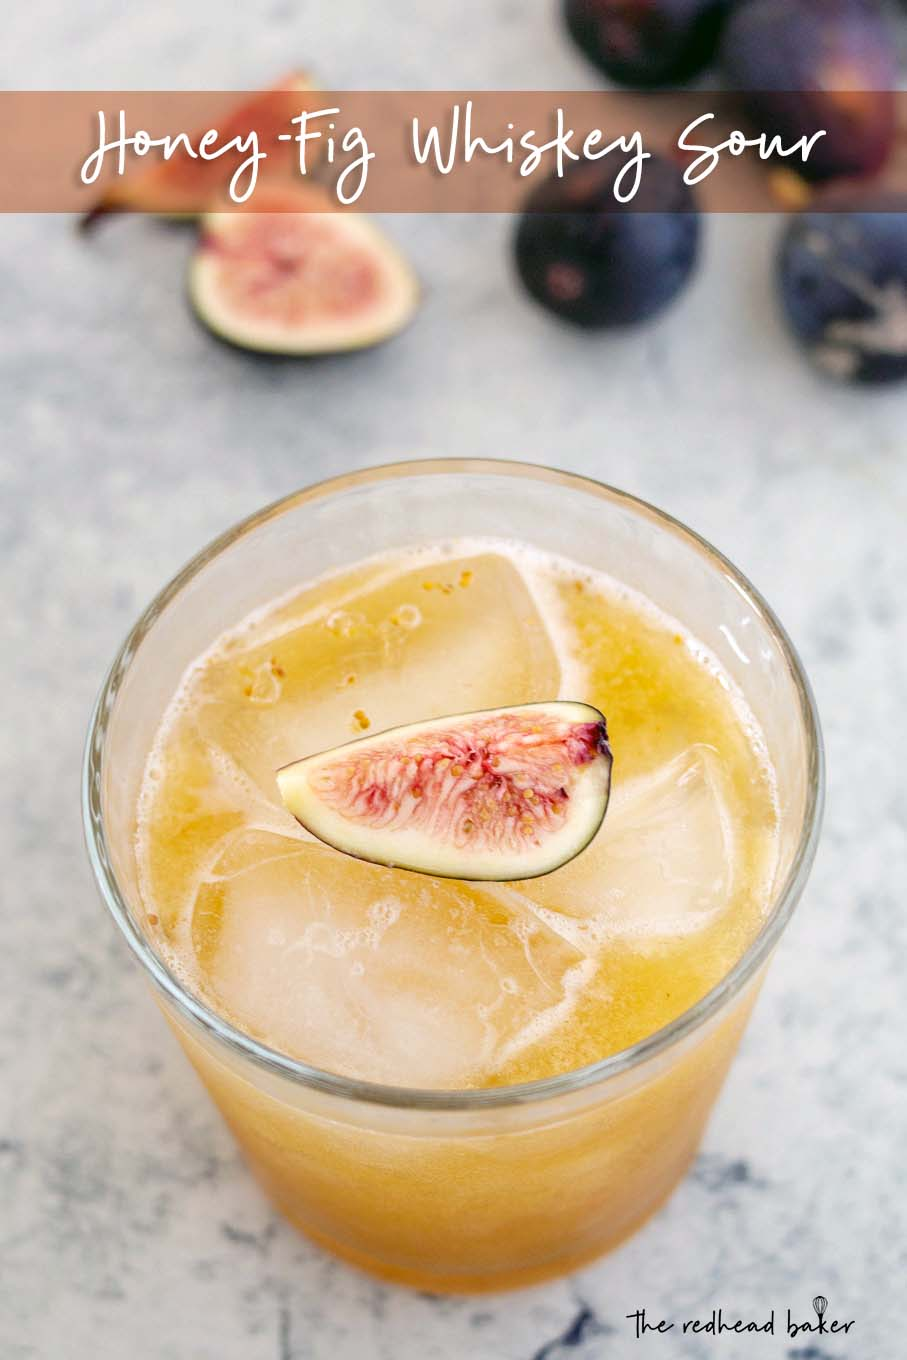 A high-angle photo of a honey-fig whiskey sour, garnished with a quarter of a fresh fig